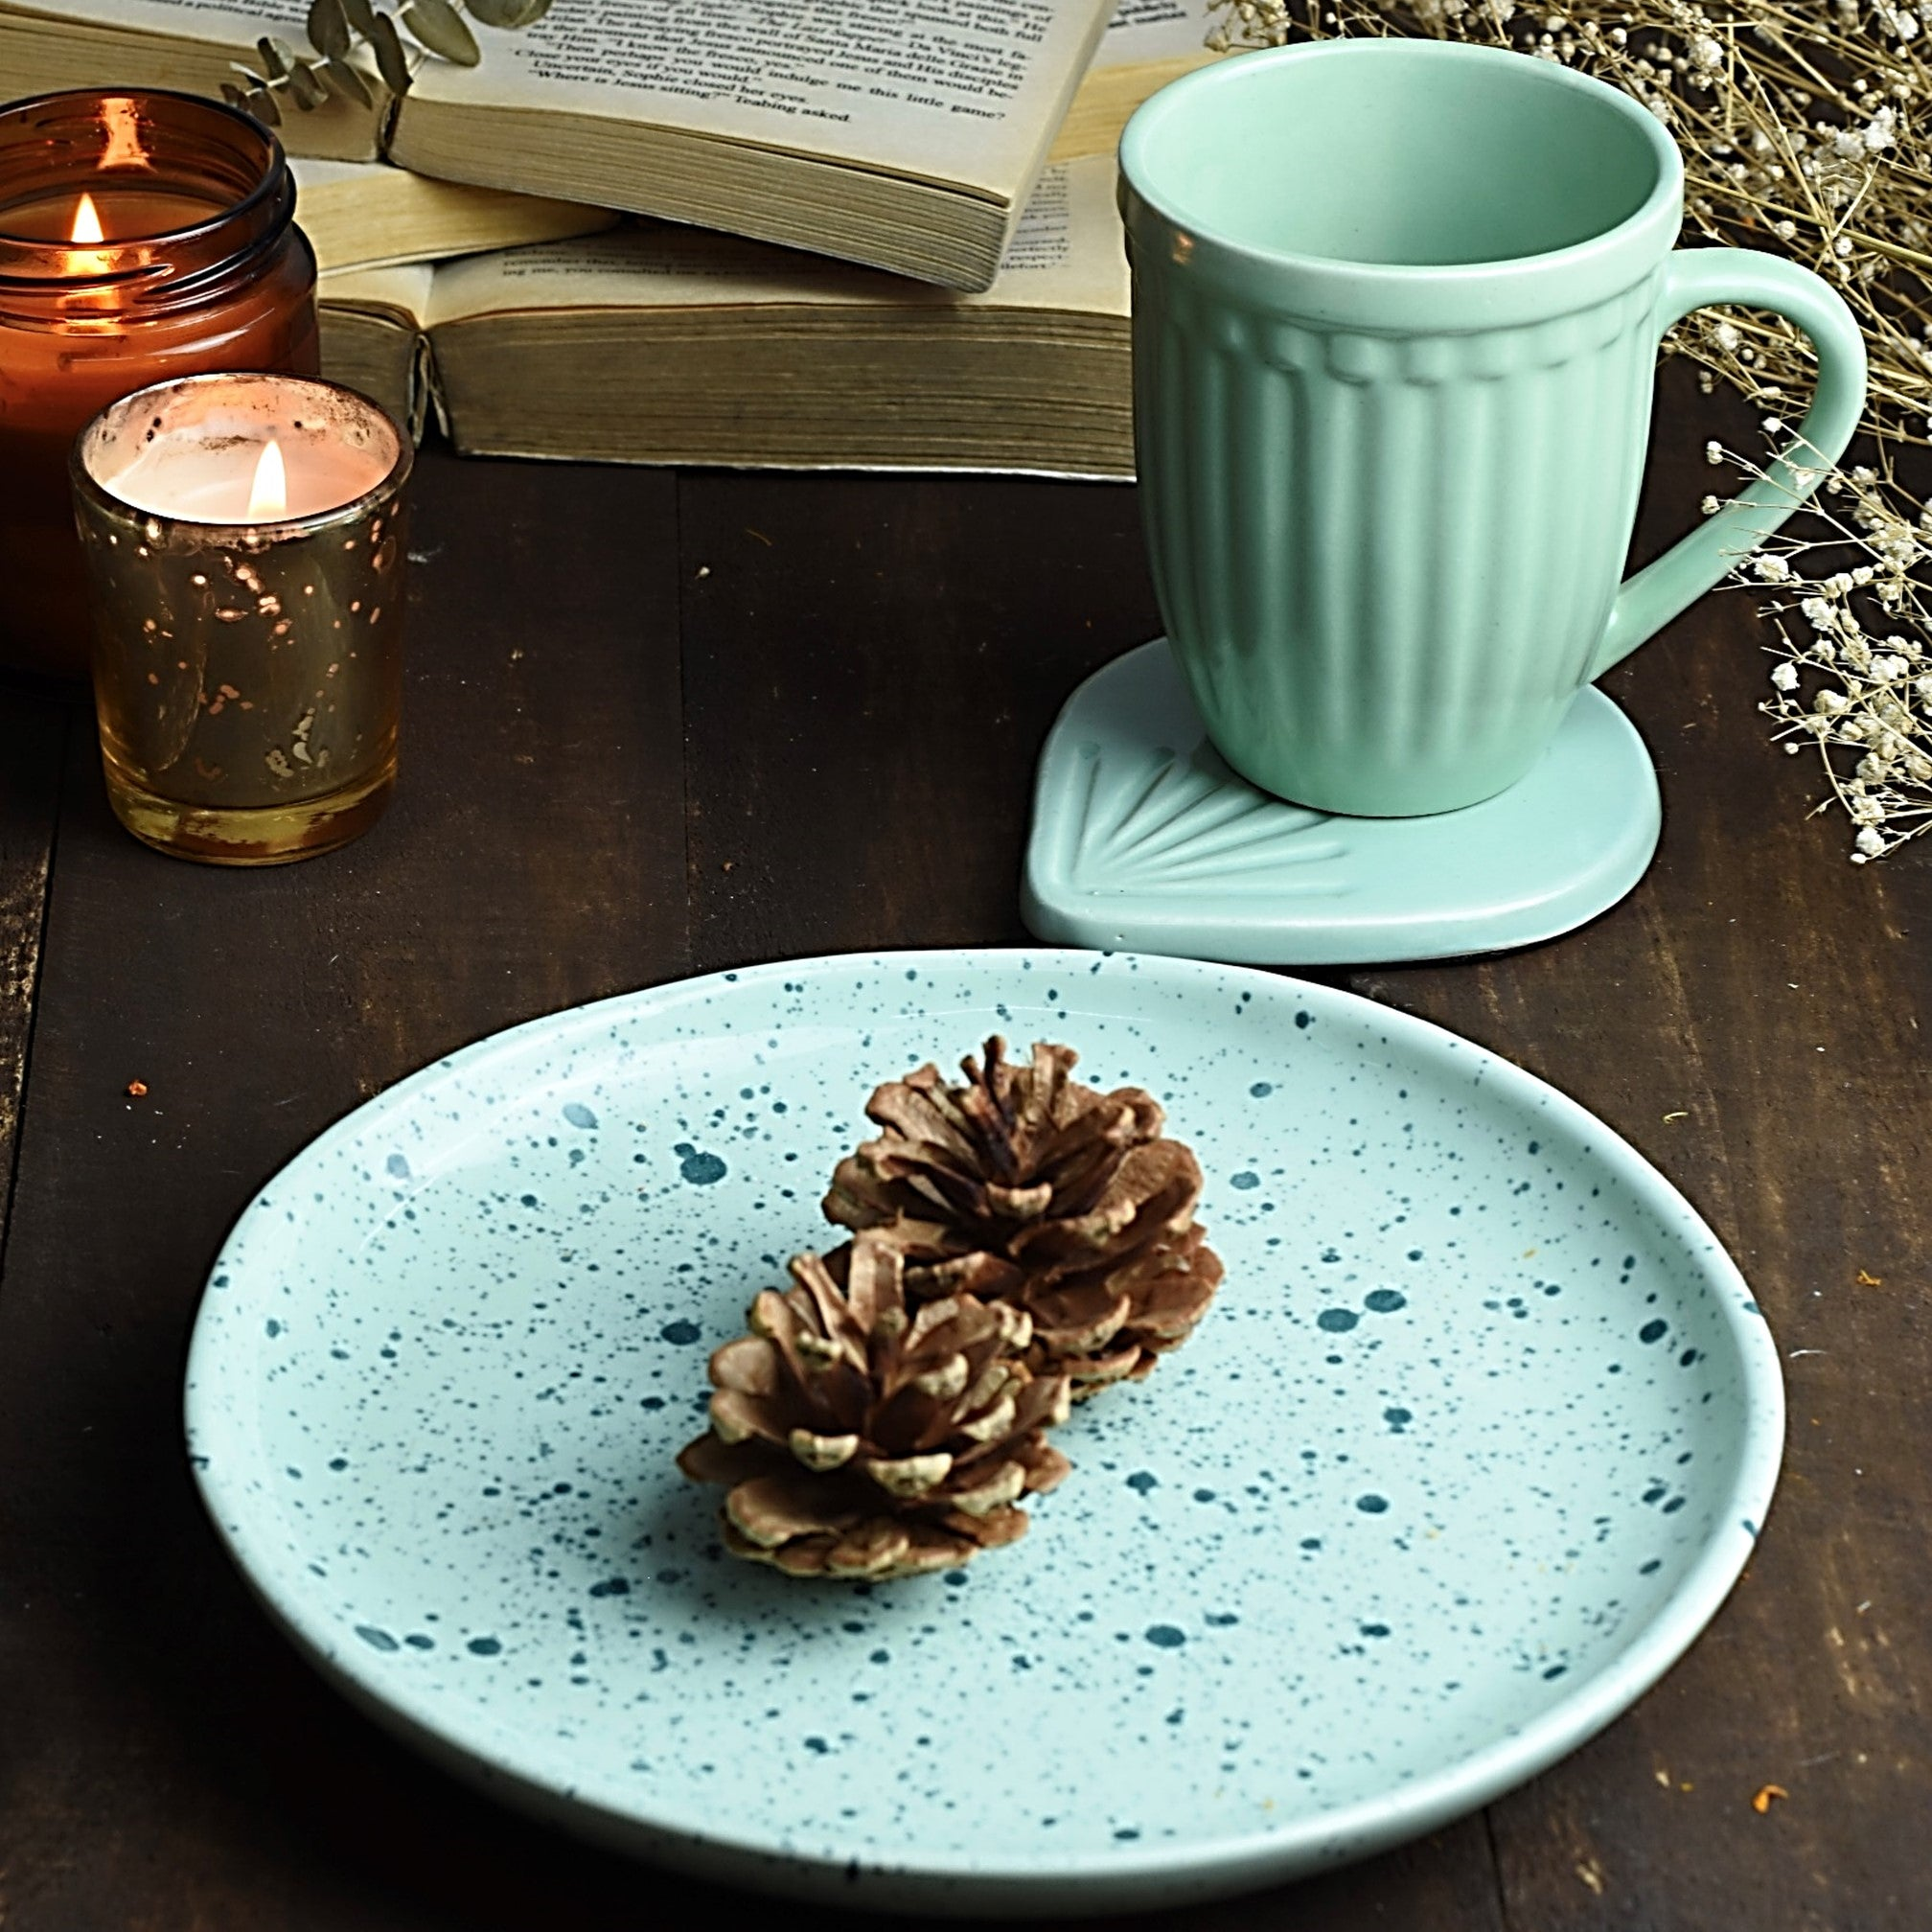 Set of 3 in Ceramic Mint Green - Salad Plate + Vintage Look Grooved Mug + Coaster 1 BHK Interiors